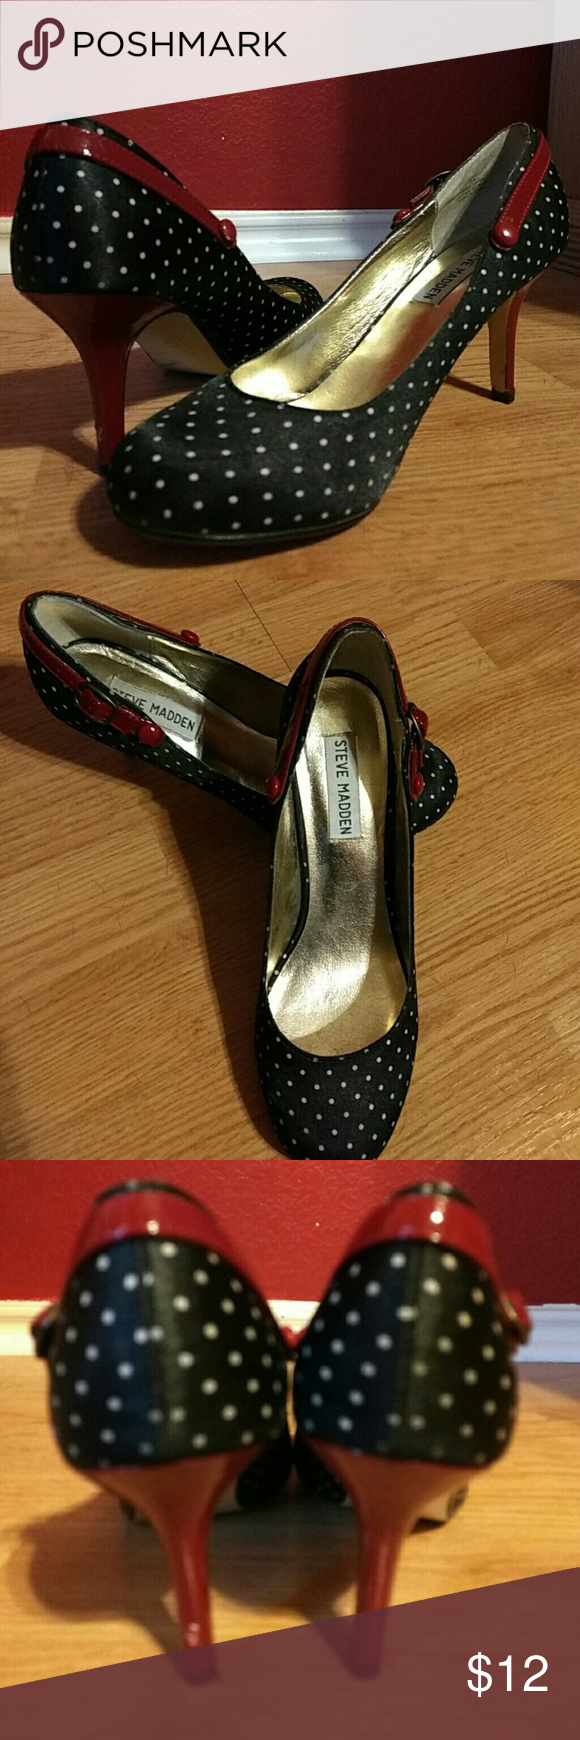 """Steve Madden Luvvy 💖Mary Janes 👠Adorable black polka dot with red pin-up pumps with a 3"""" heel. They have been worn but gently used. The insides are in perfect condition the only wear is showing at the bottom of the shoes. Steve Madden Shoes Heels"""